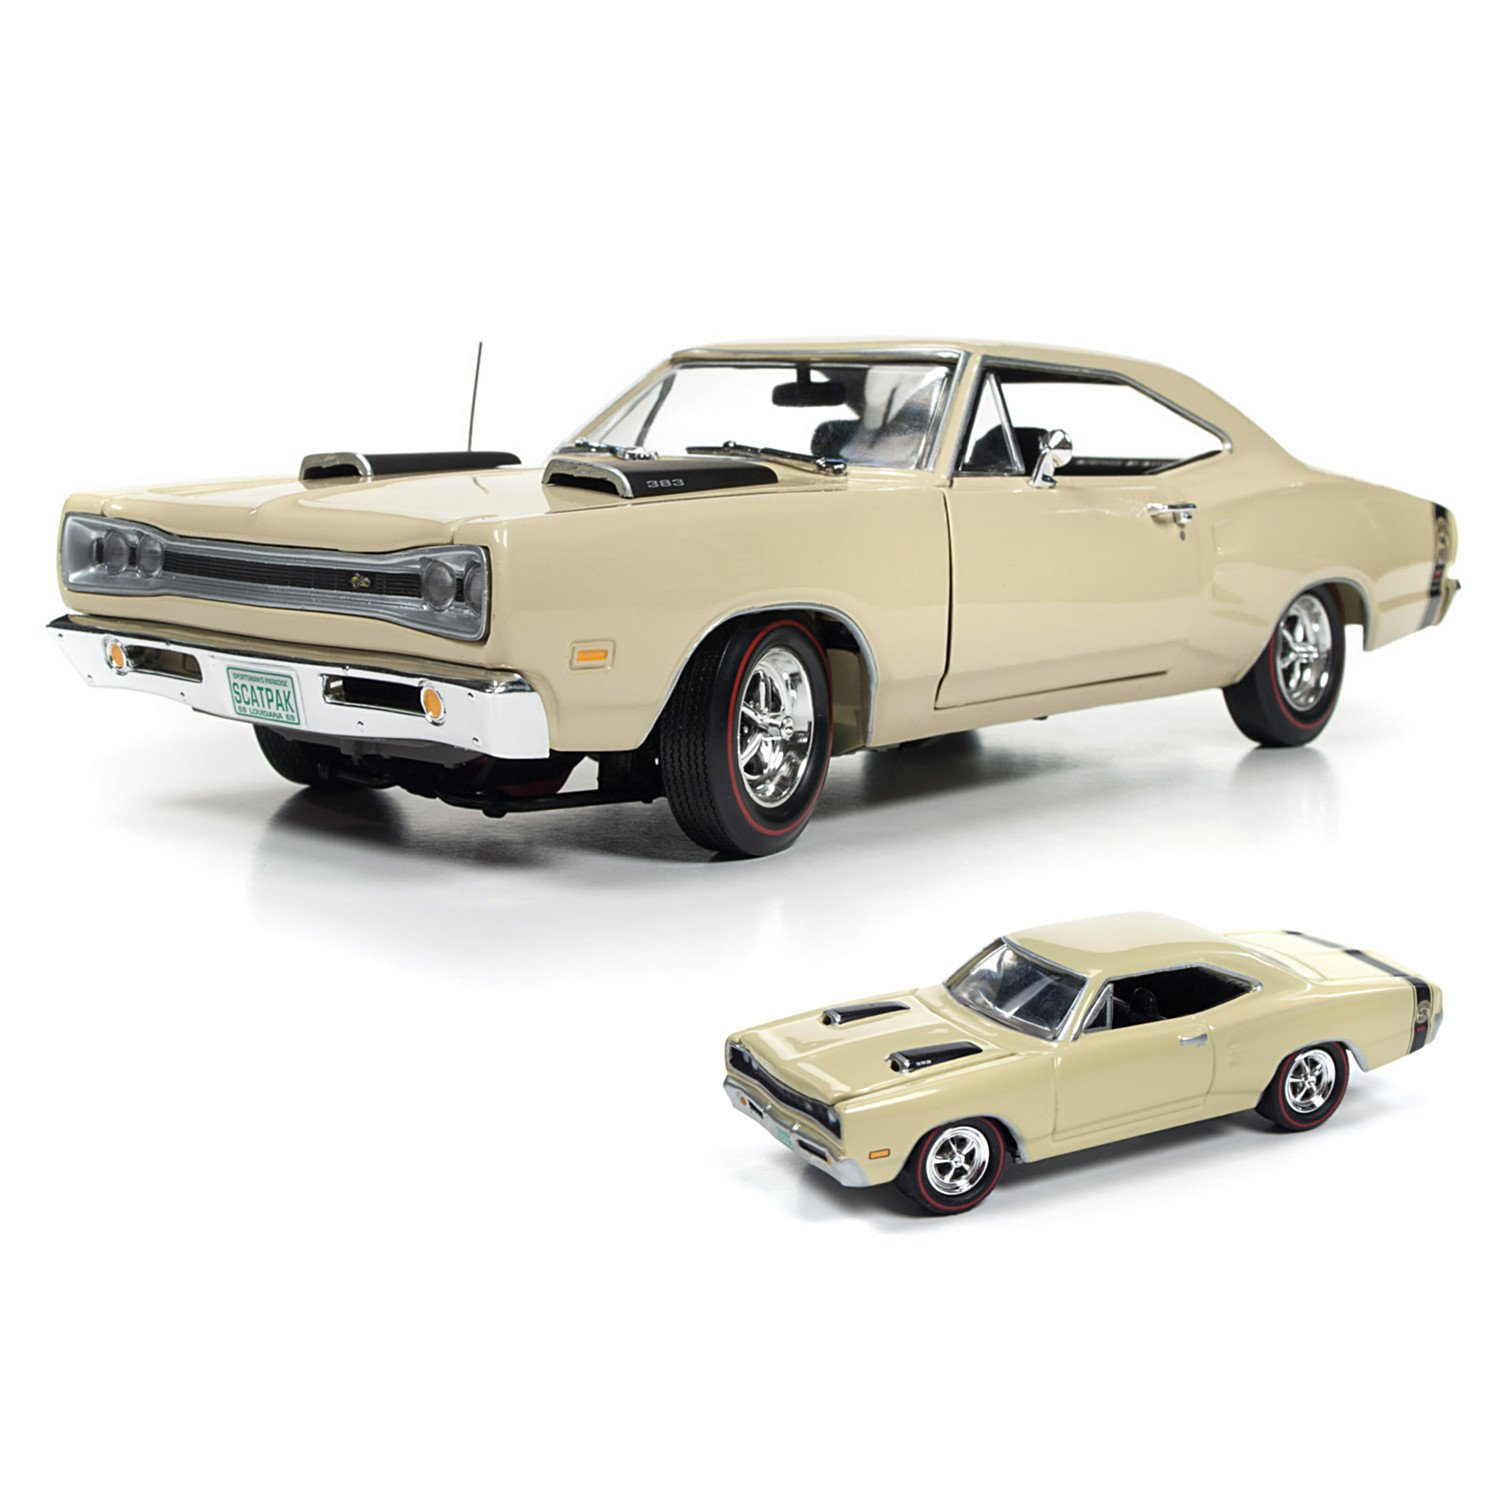 Dodge Collectible: 1969 Dodge Coronet Super Bee Scat Pack 1:18 Scale Diecast Car by The Hamilton Collection